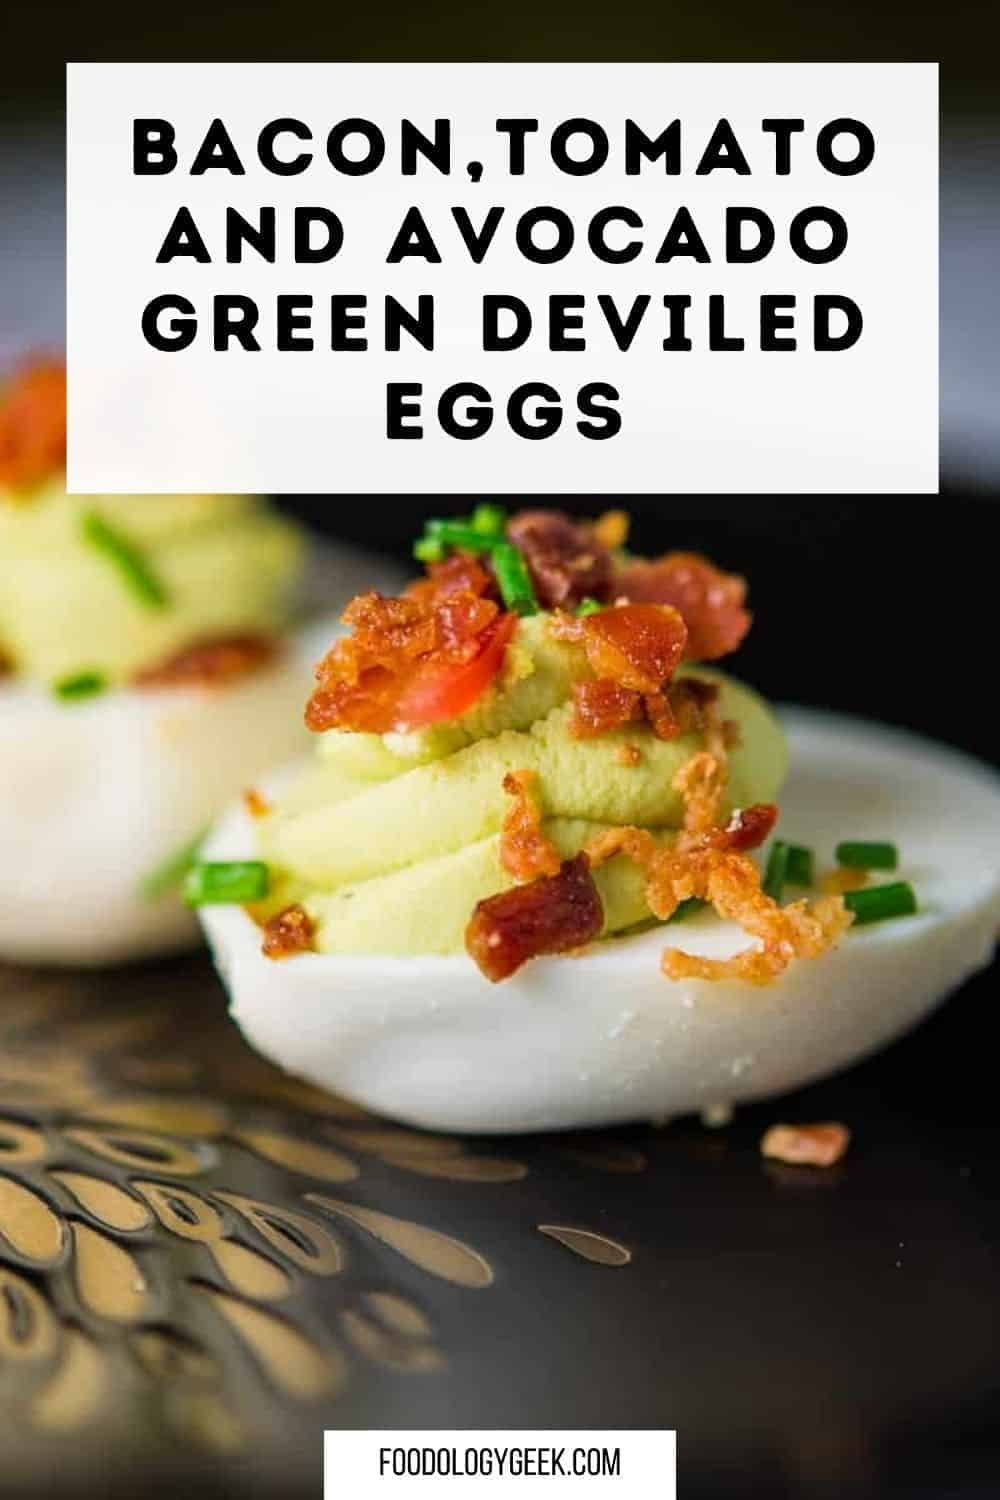 Up your nutrition game with these Bacon, Tomato, and Avocado Deviled Eggs. These paleo deviled eggs made without mayo are about to rock your Holiday! Deviled eggs with bacon – who's in?